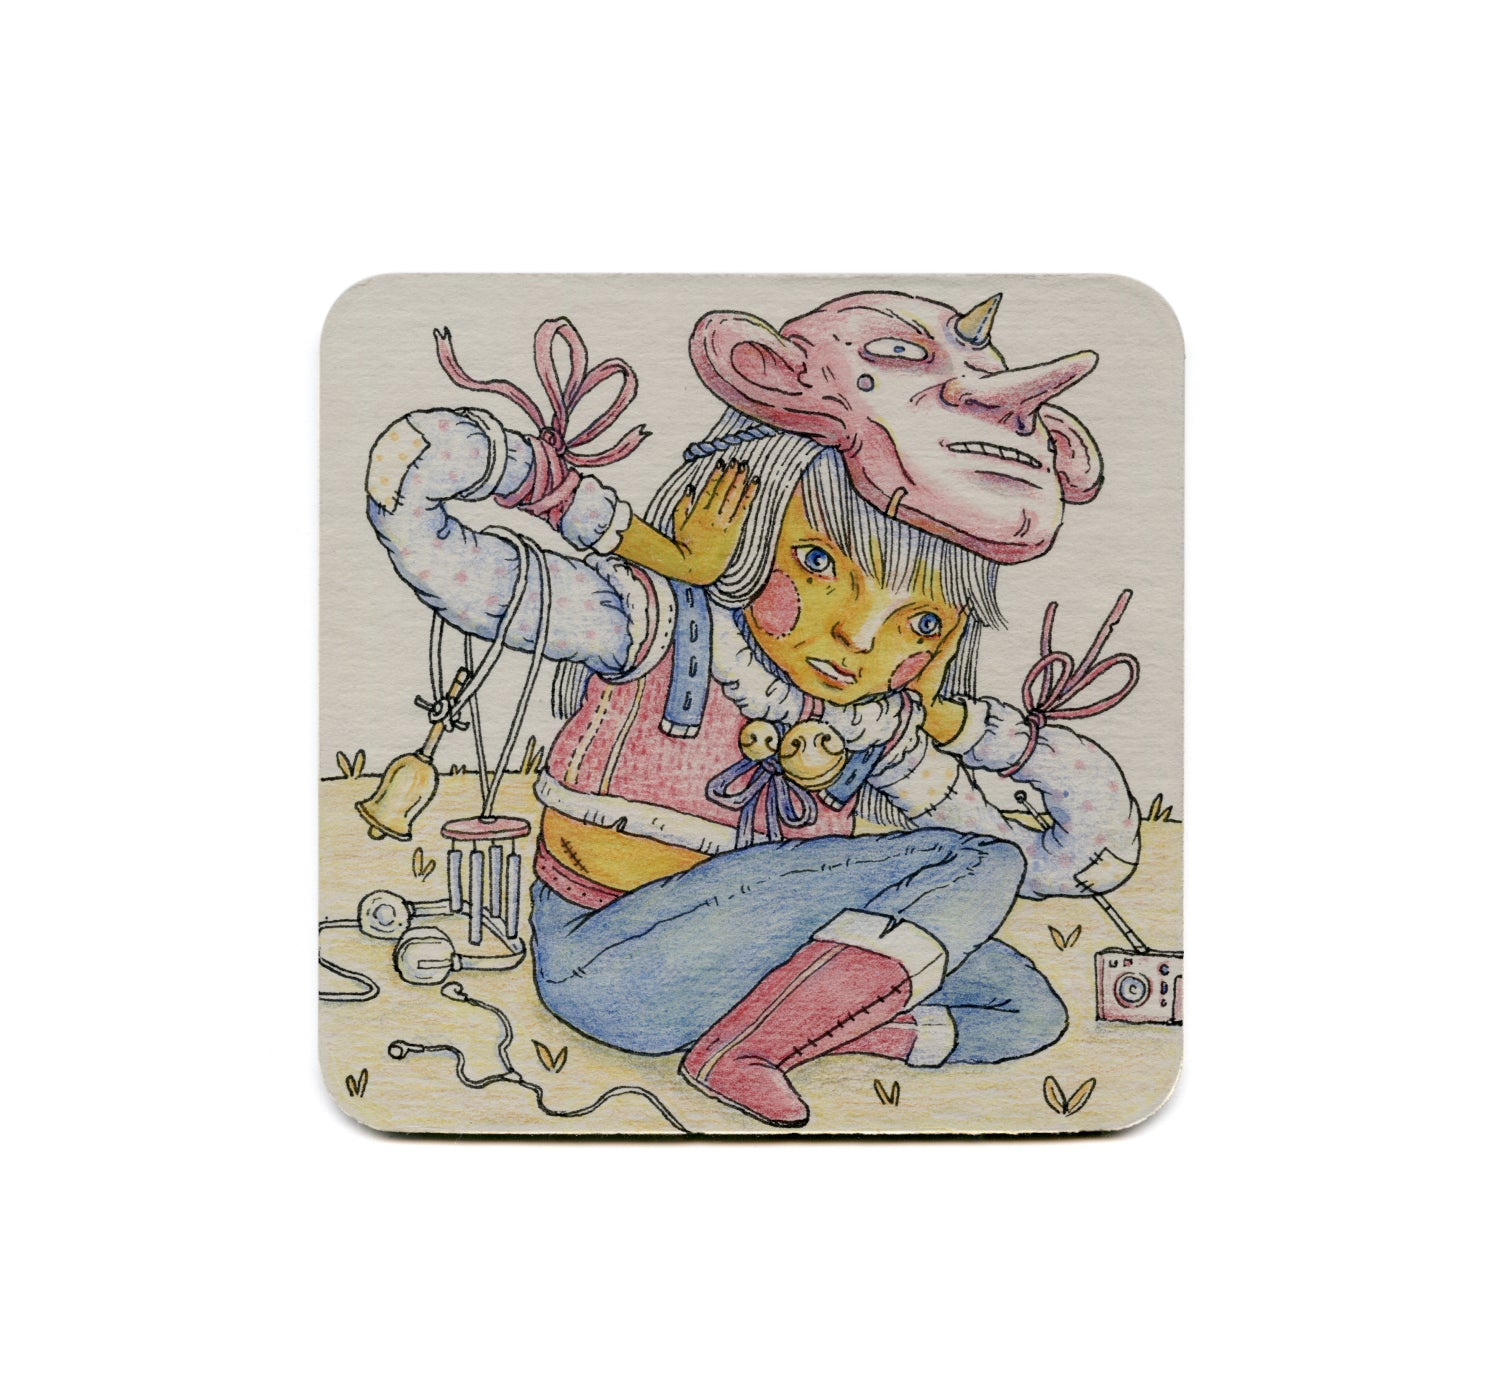 S2 Shinyeon Moon - Hear No Evil Coaster